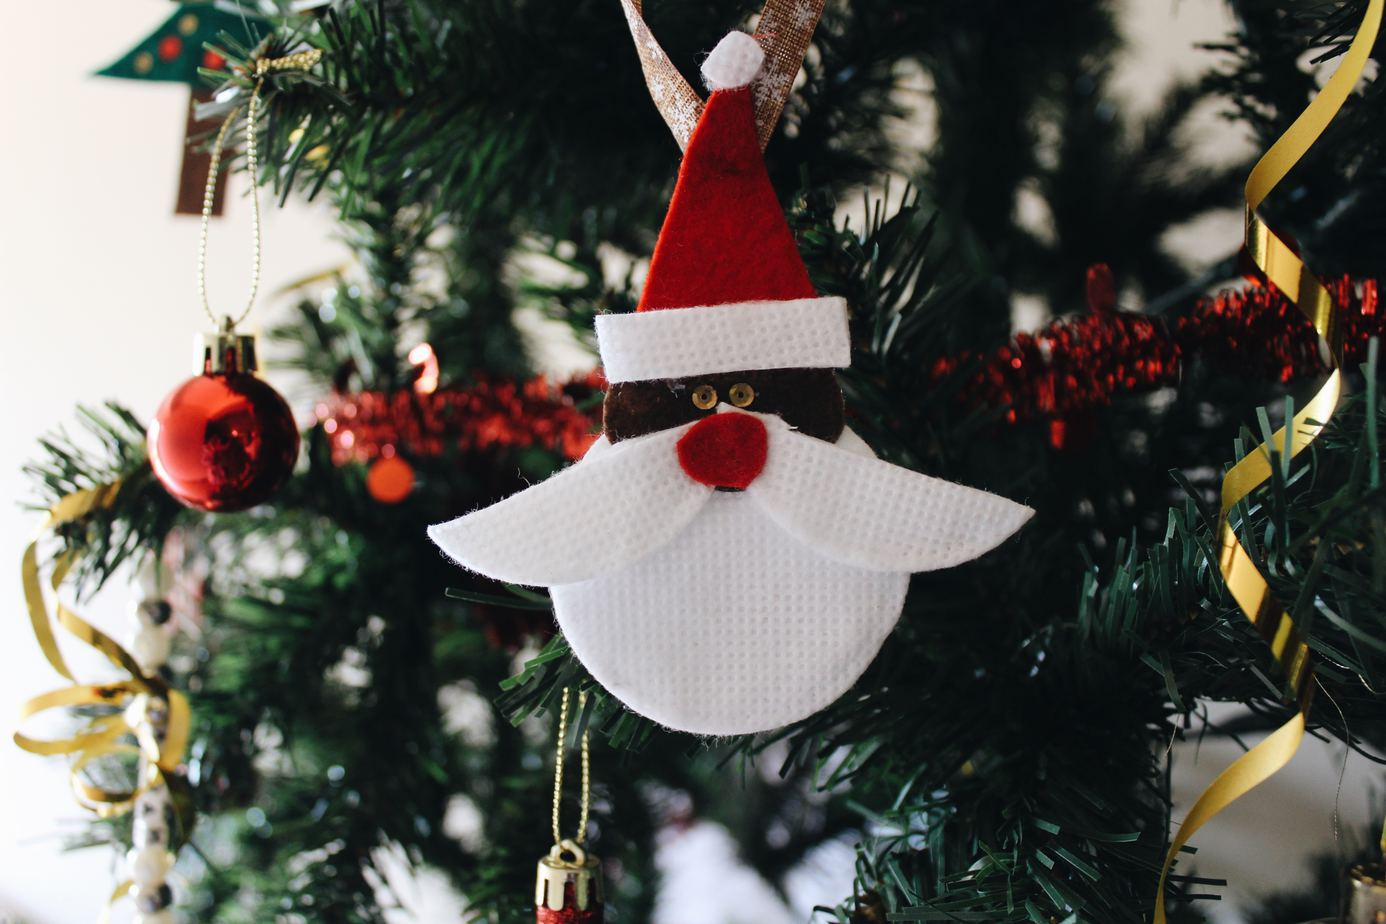 Santa Christmas ornament hanging on tree